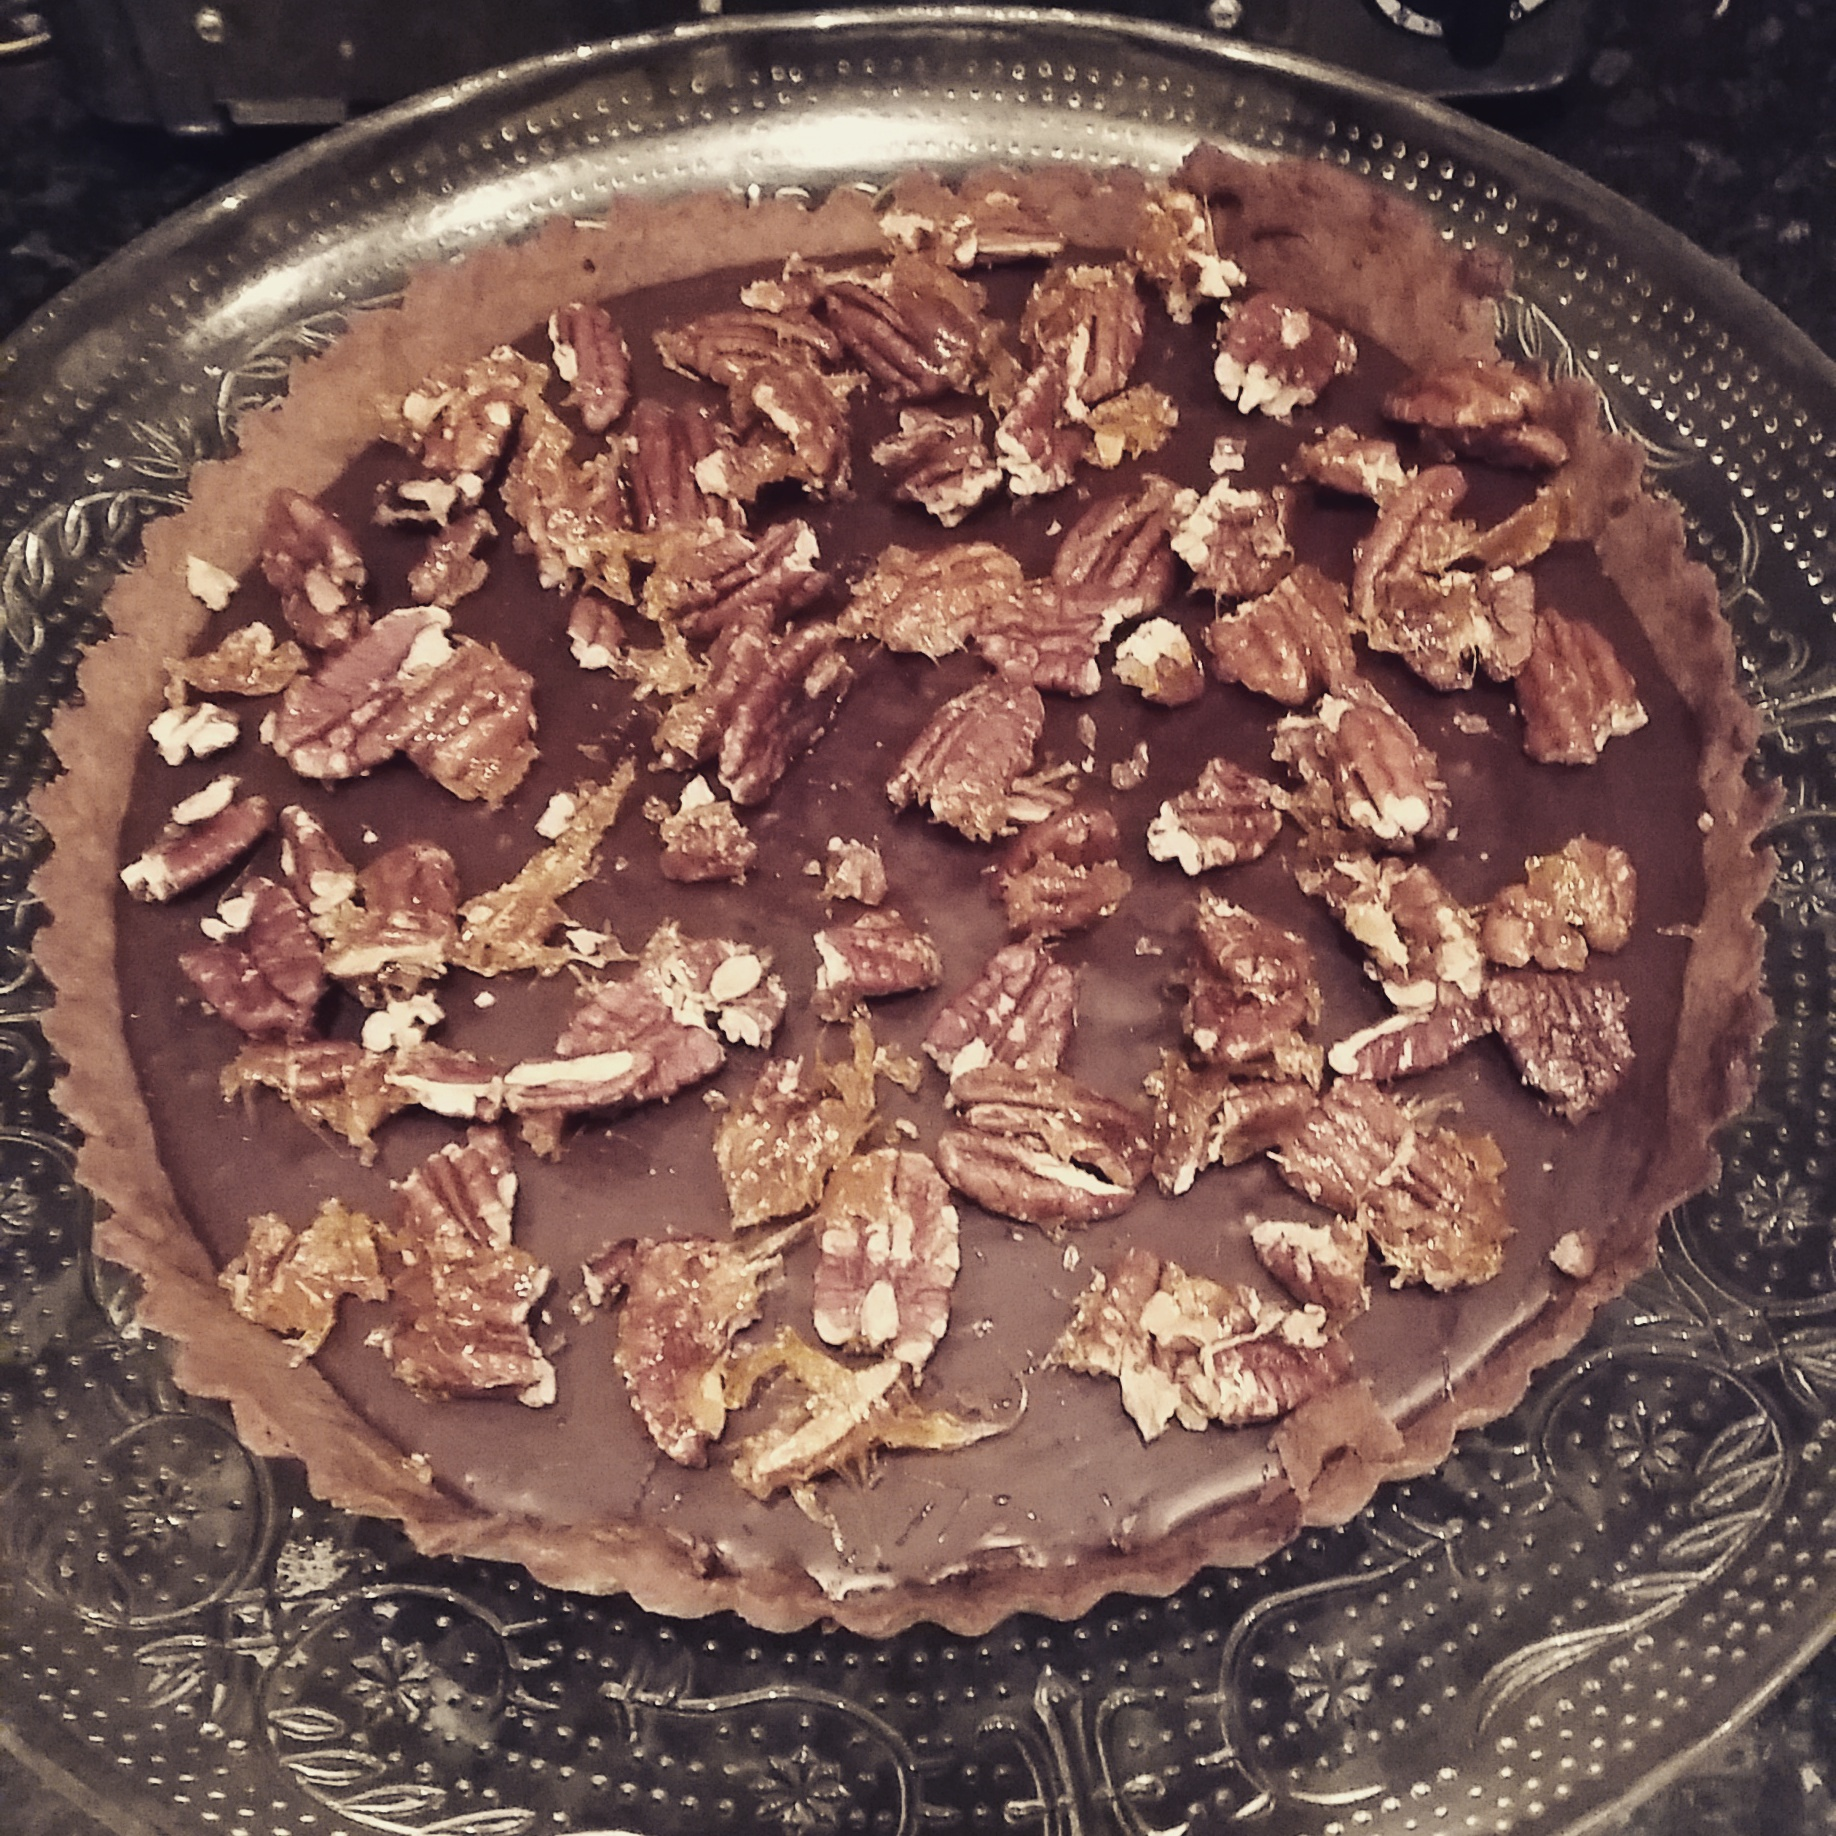 Paul A Young's Sea-Salted Chocolate and Pecan Tart Recipe Review